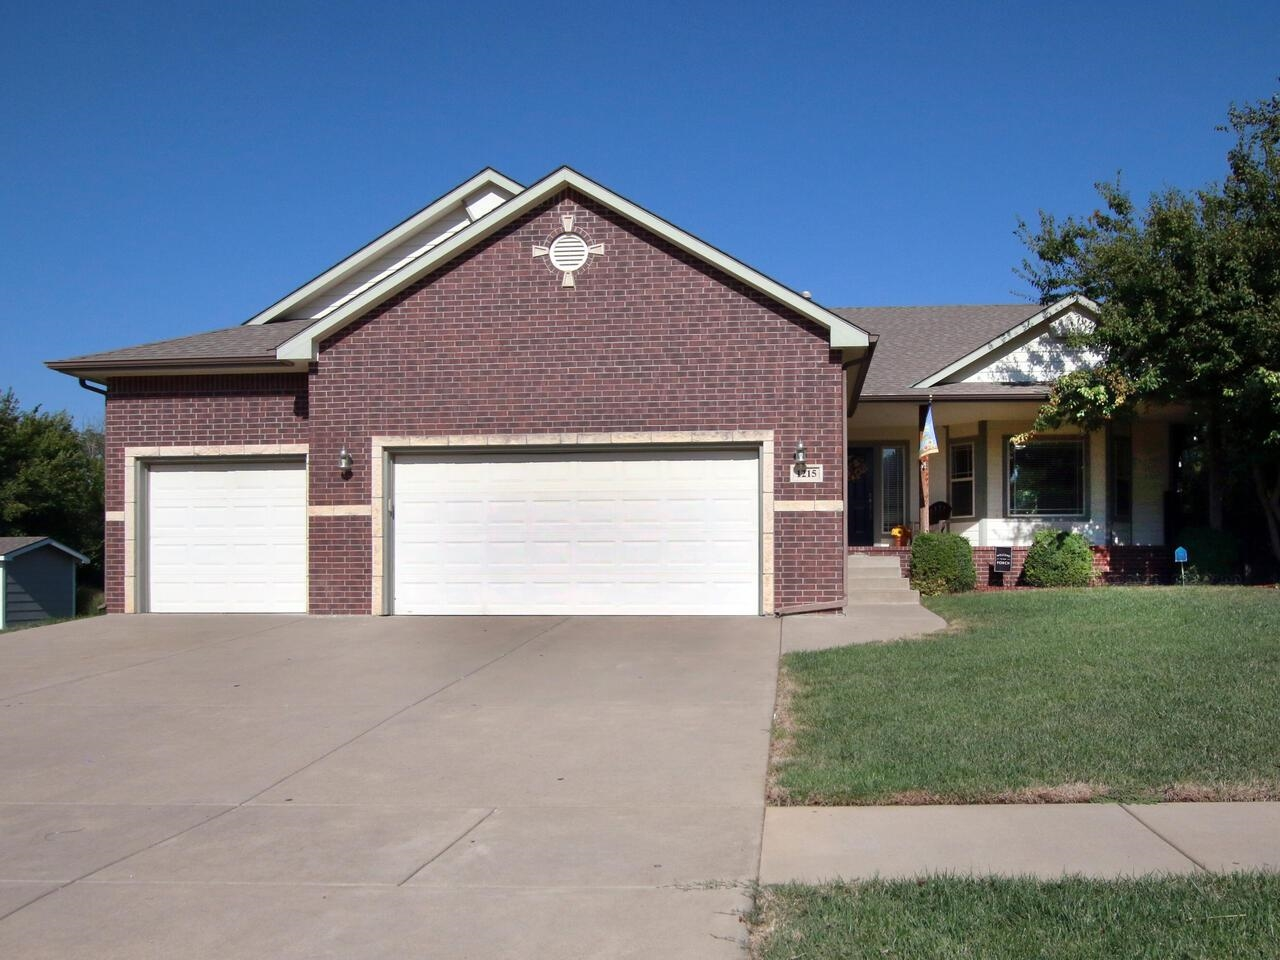 Wonderful Derby Park Hill home with 5 bedrooms, 3 baths and 3 car garage. An office/bonus room or no